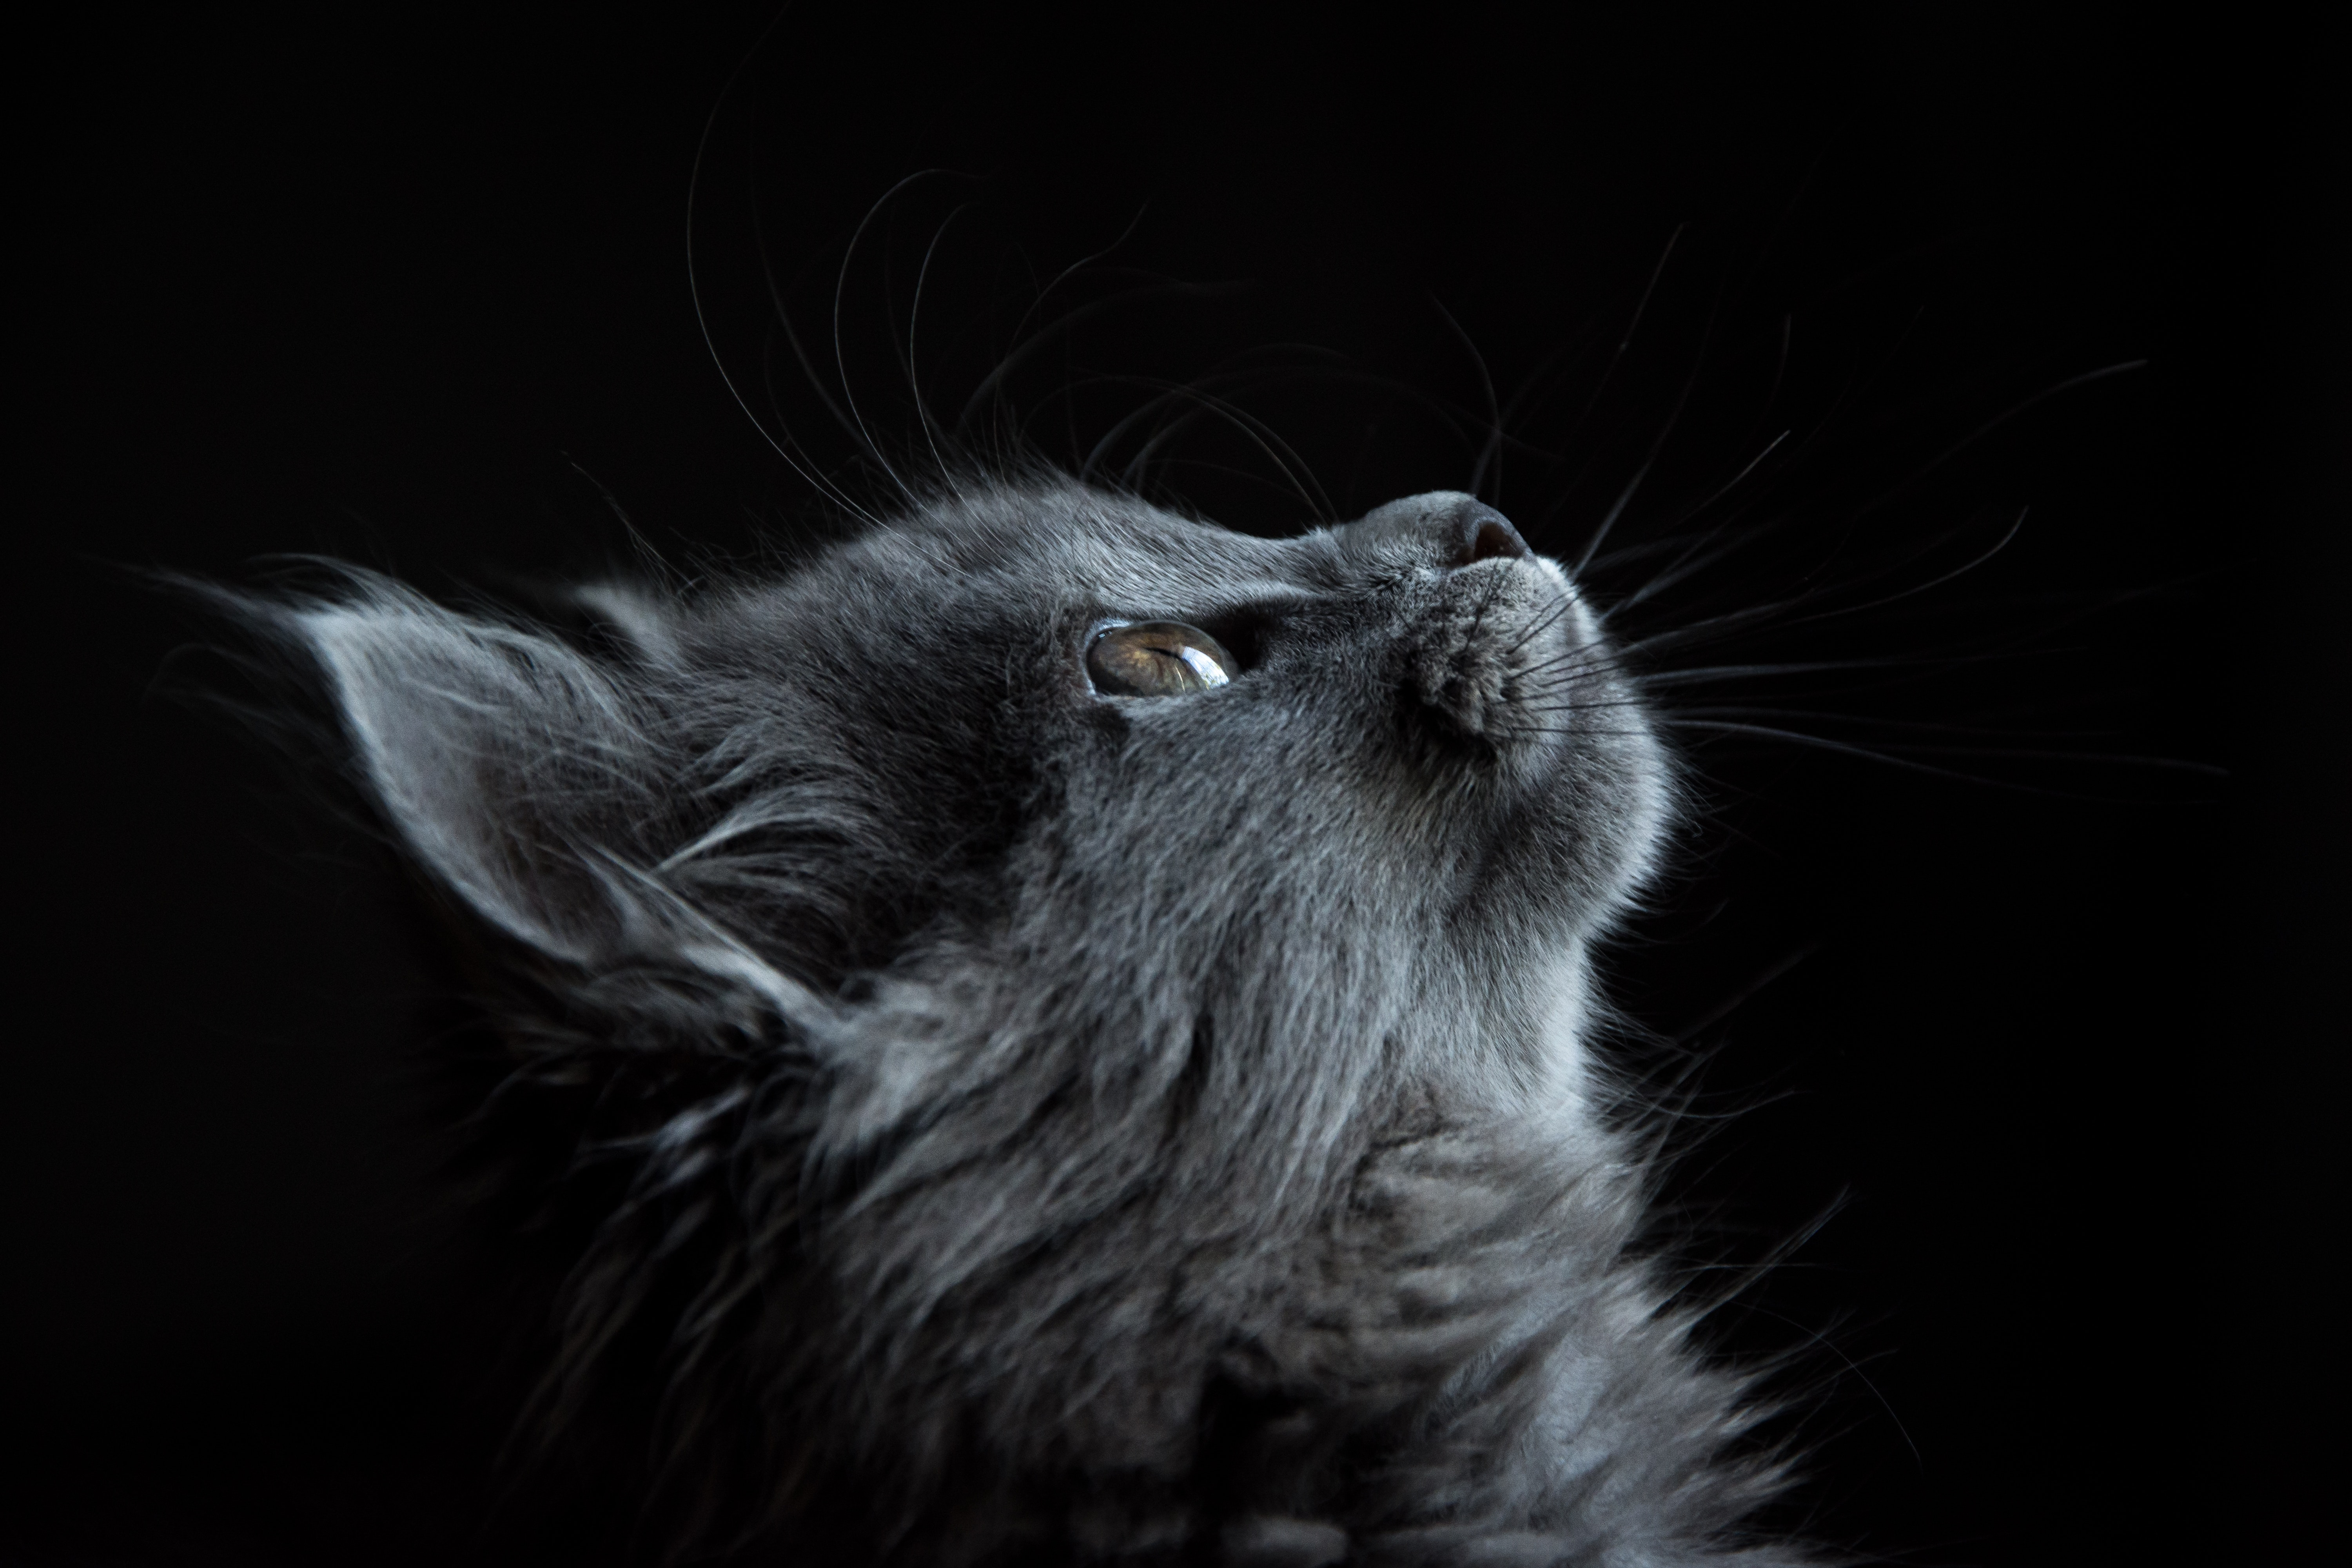 gray cat looking up